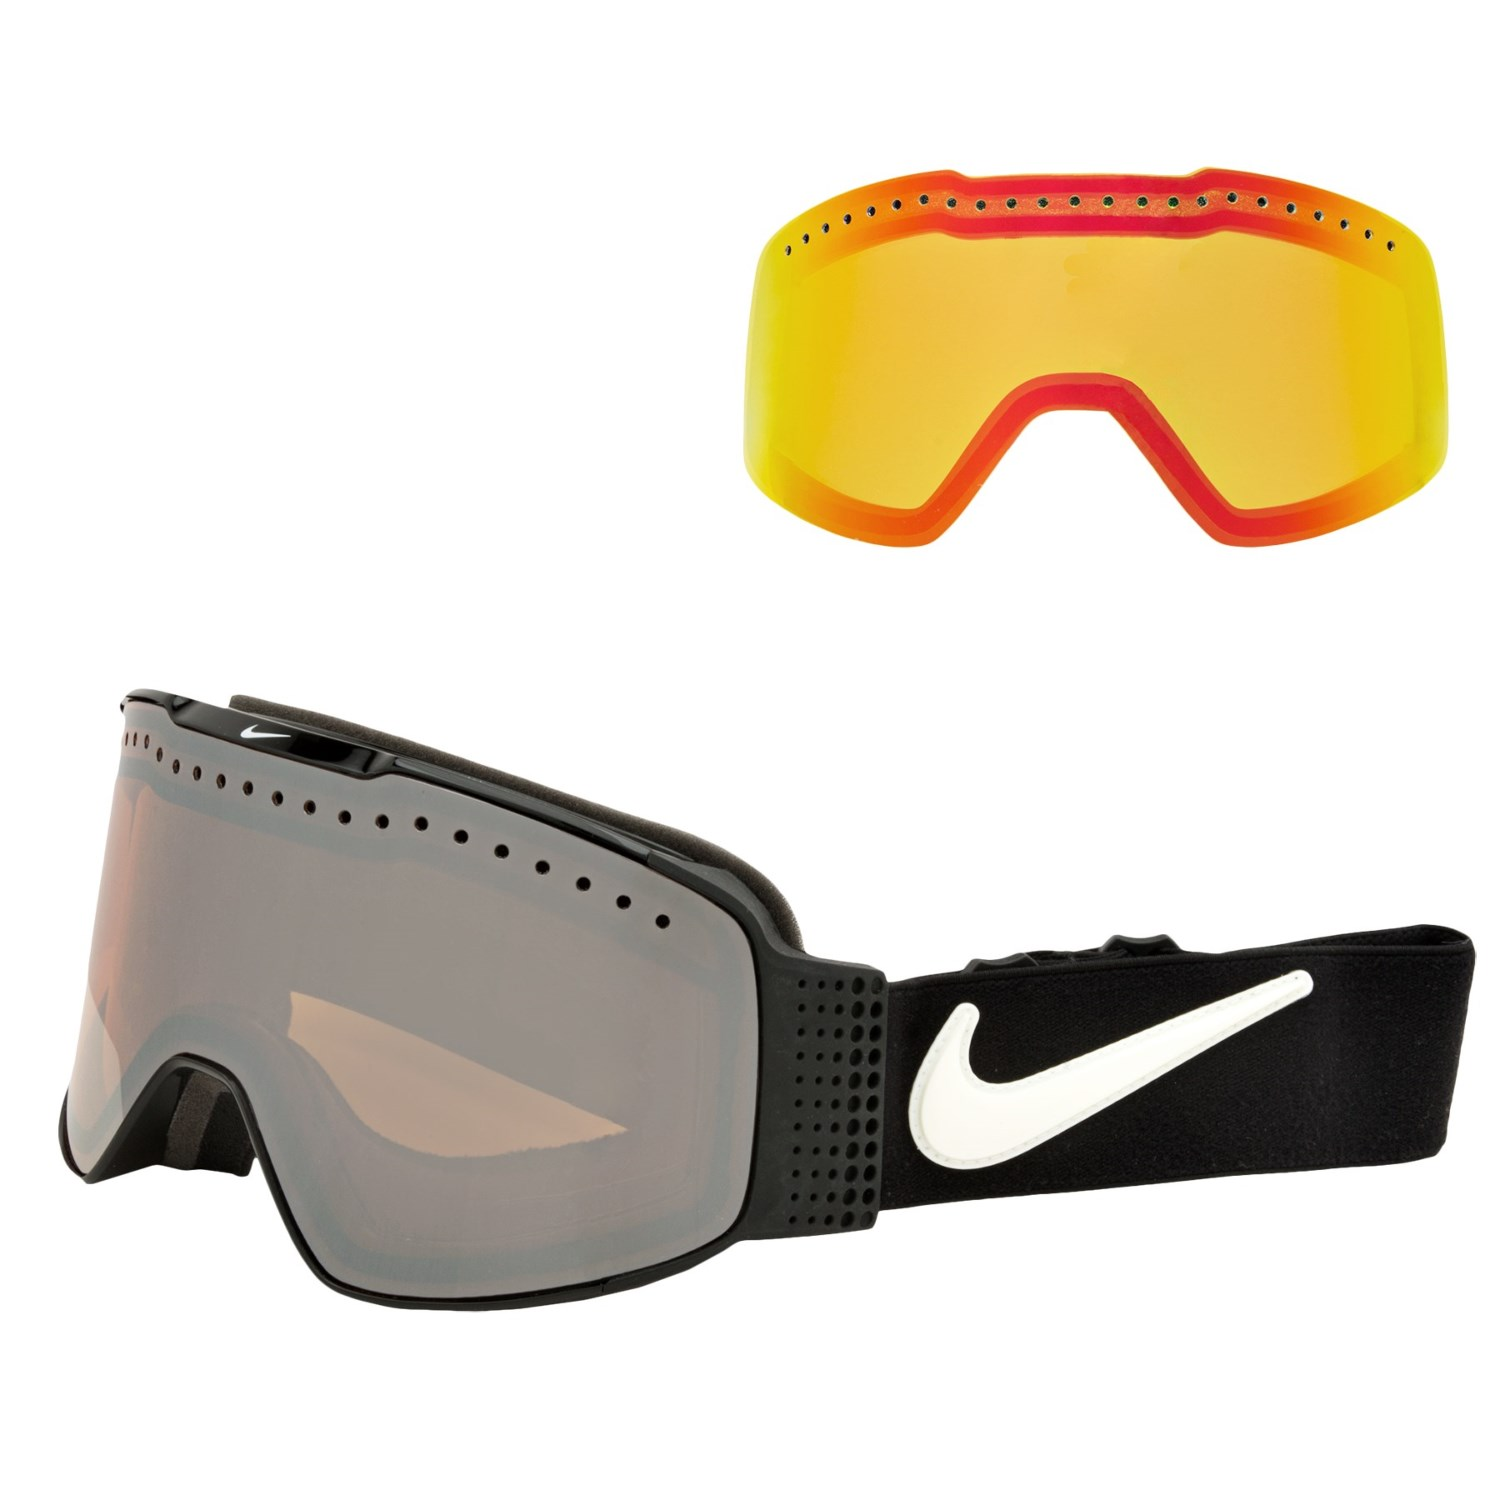 c1433177024 Nike Fade Ski Goggles Extra Lens 55 on PopScreen